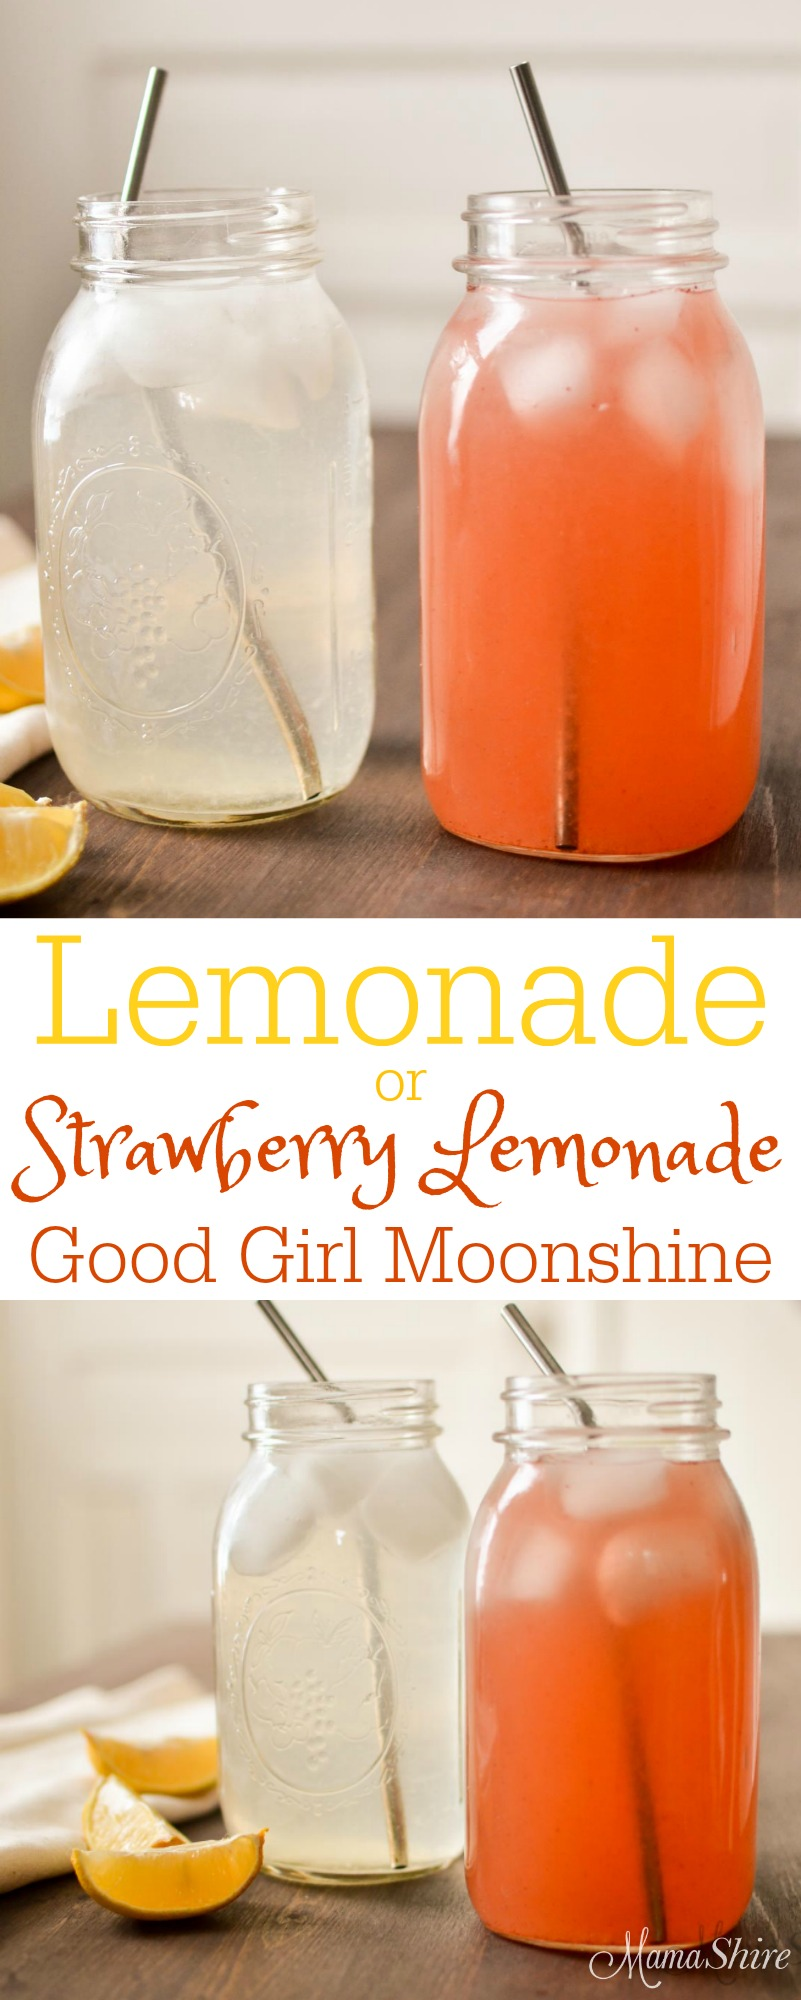 Lemonade Good Girl Moonshine with Strawberry Lemonade option. Enjoy this GGMS sipper throughout the day. So good for you! Kick the soda habit! THM-Sipper